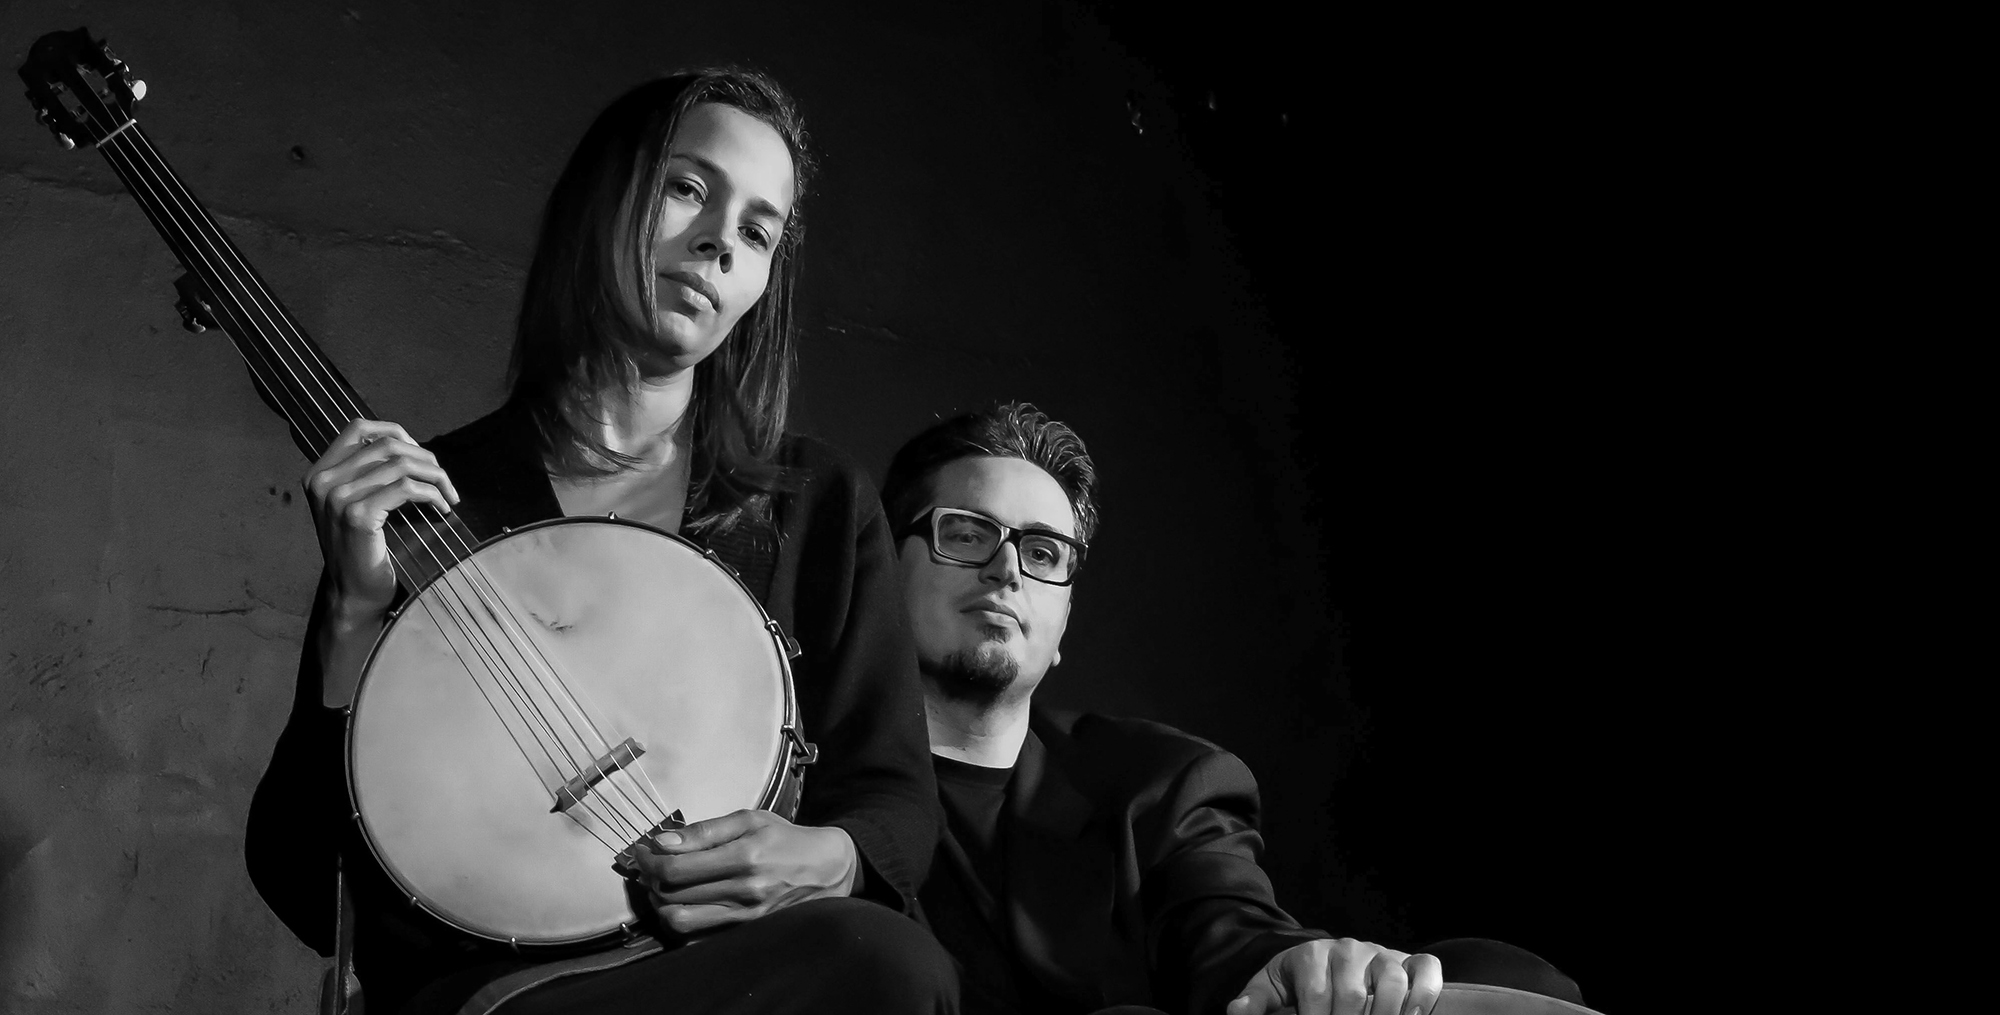 Rhiannon Giddens poses with Francesco Turrisi